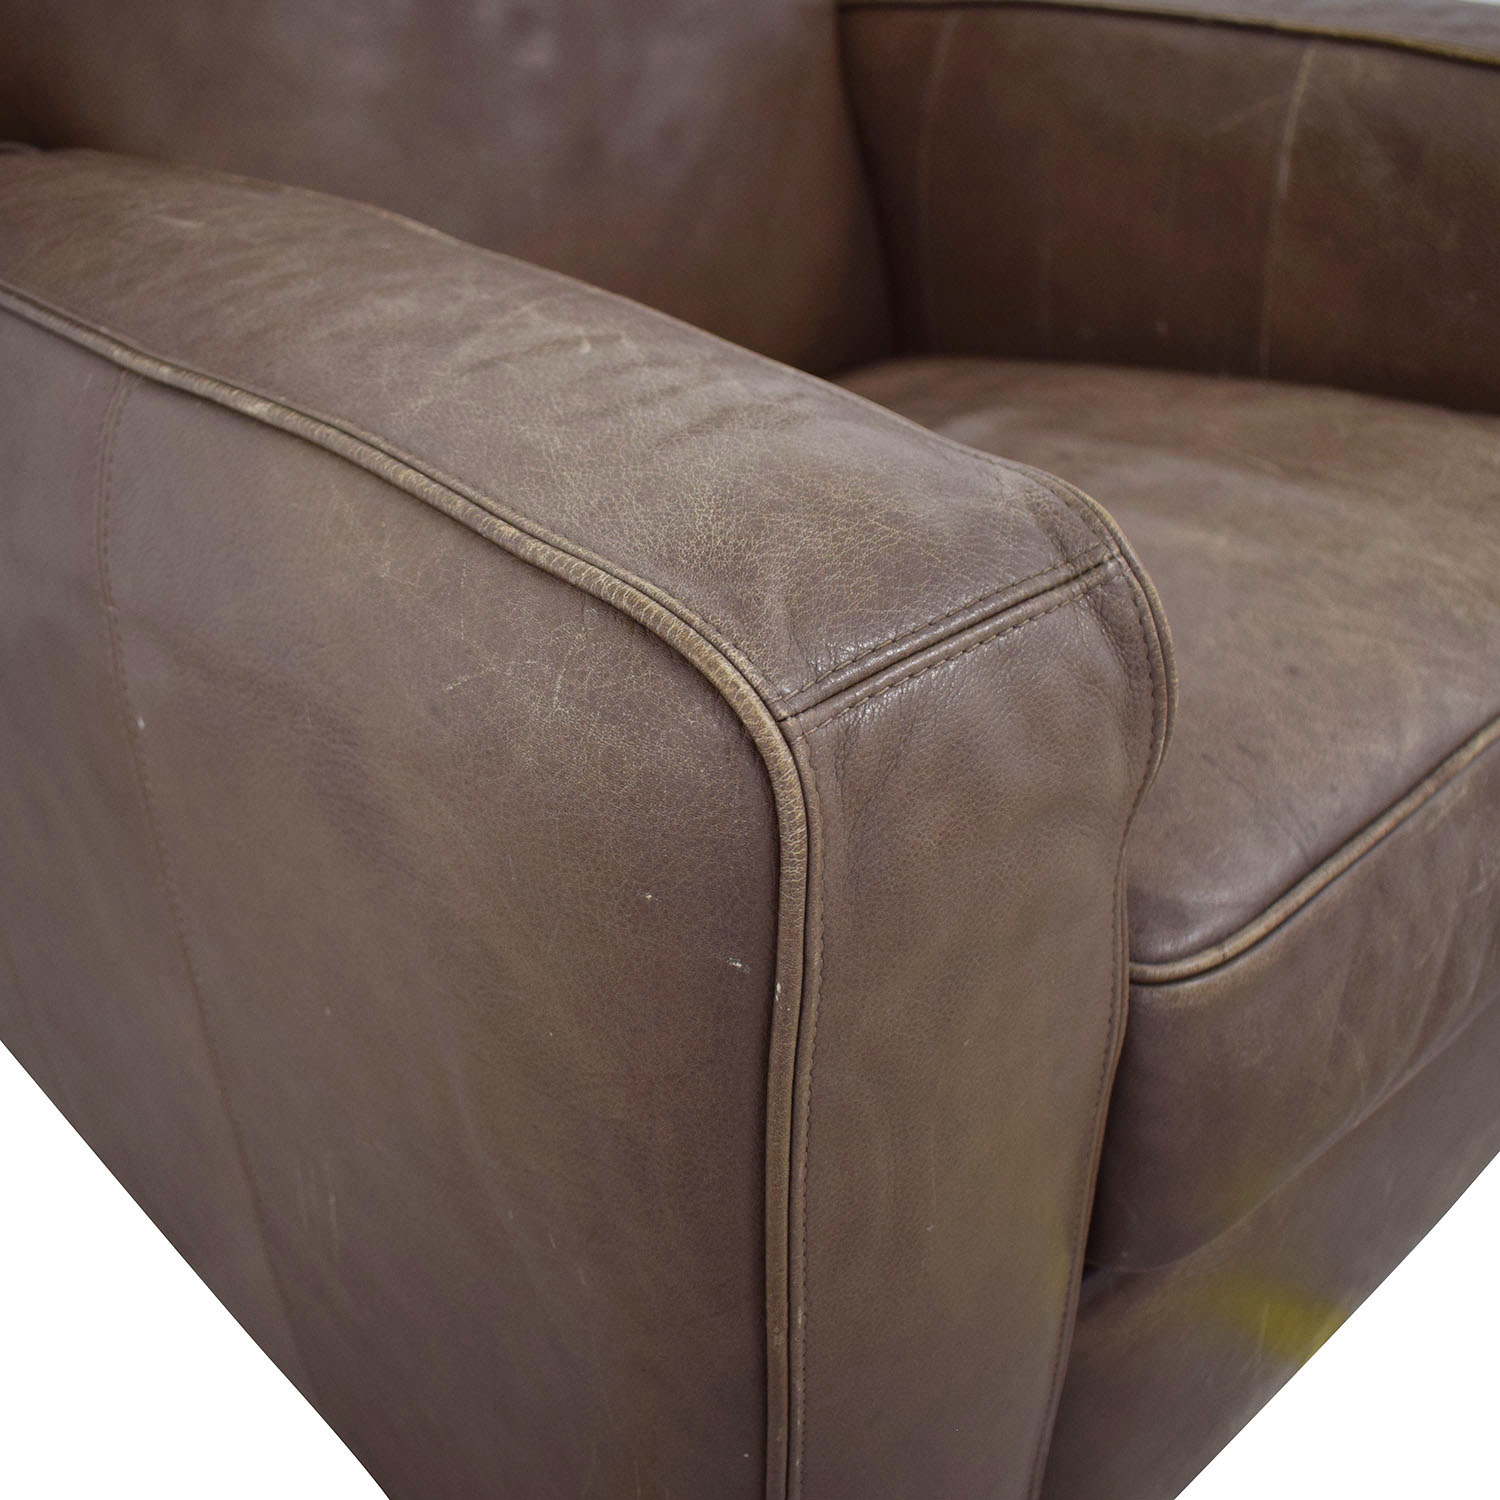 buy Crate & Barrel Leather Recliner Chair Crate & Barrel